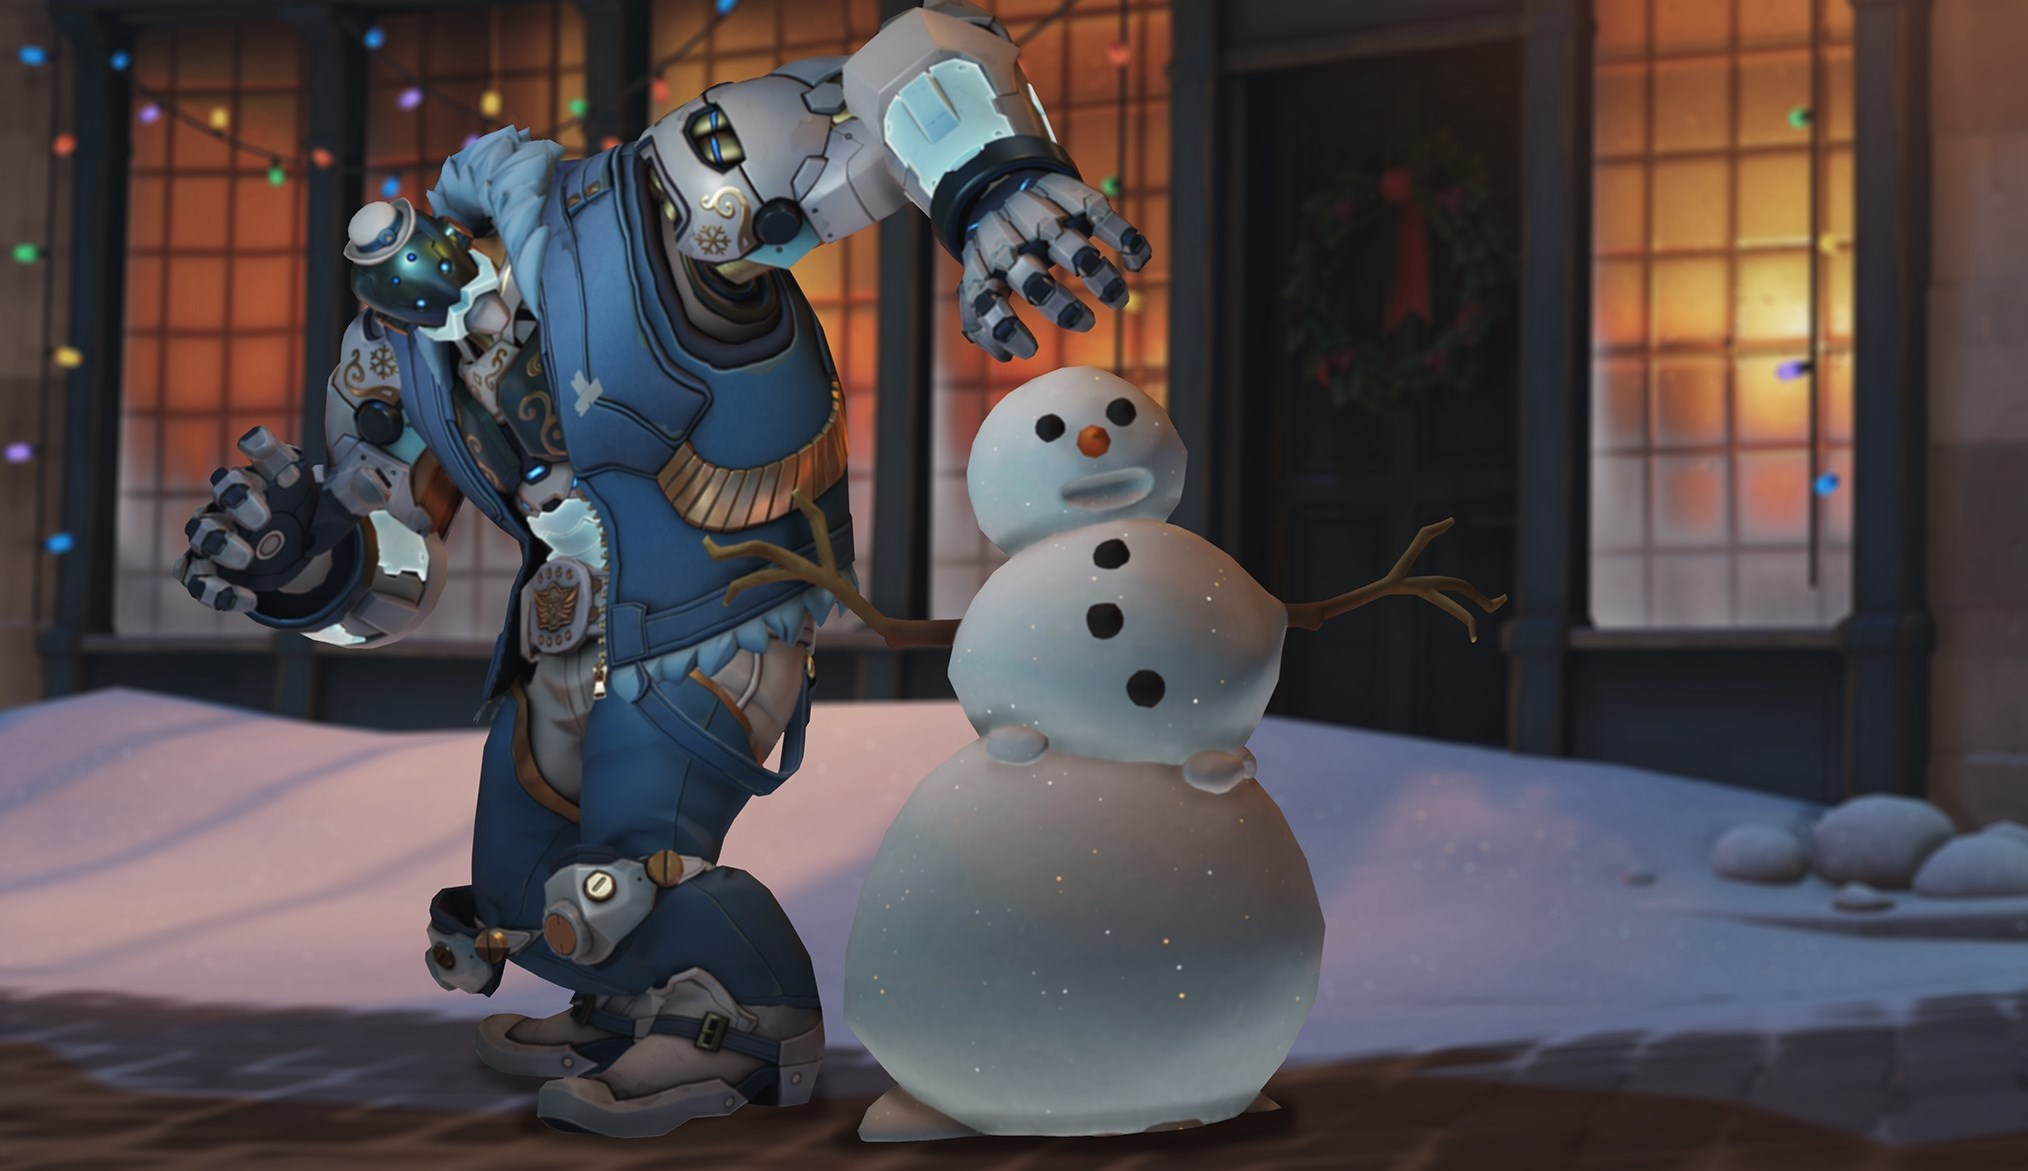 Overwatch Christmas 2019 Skins.Overwatch Winter Wonderland 2018 Skins Revealed Pc Gamer